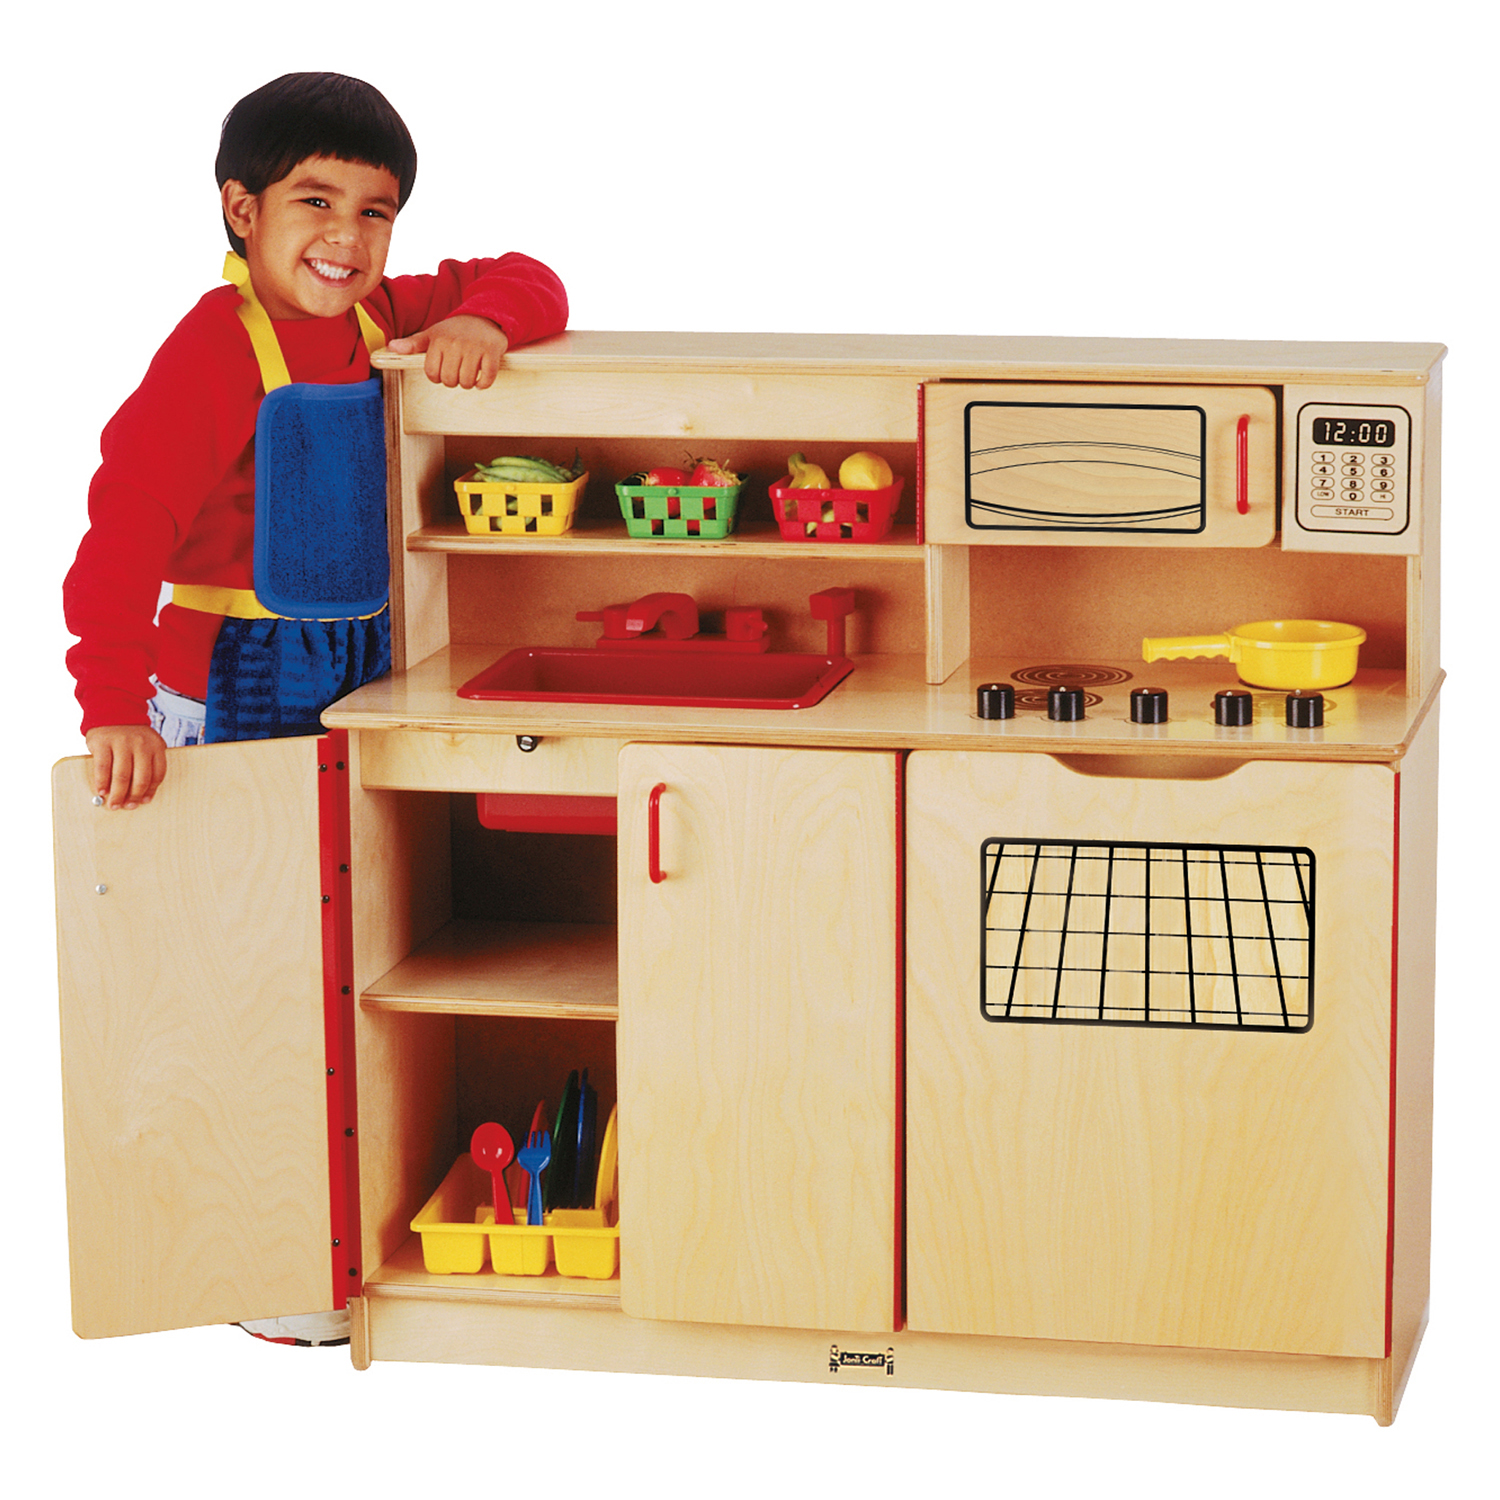 Jonti-Craft Preschool Kids Pretend Play Room Wooden 4-In-1 Toy Cooking Kitchen Activity Center at Sears.com